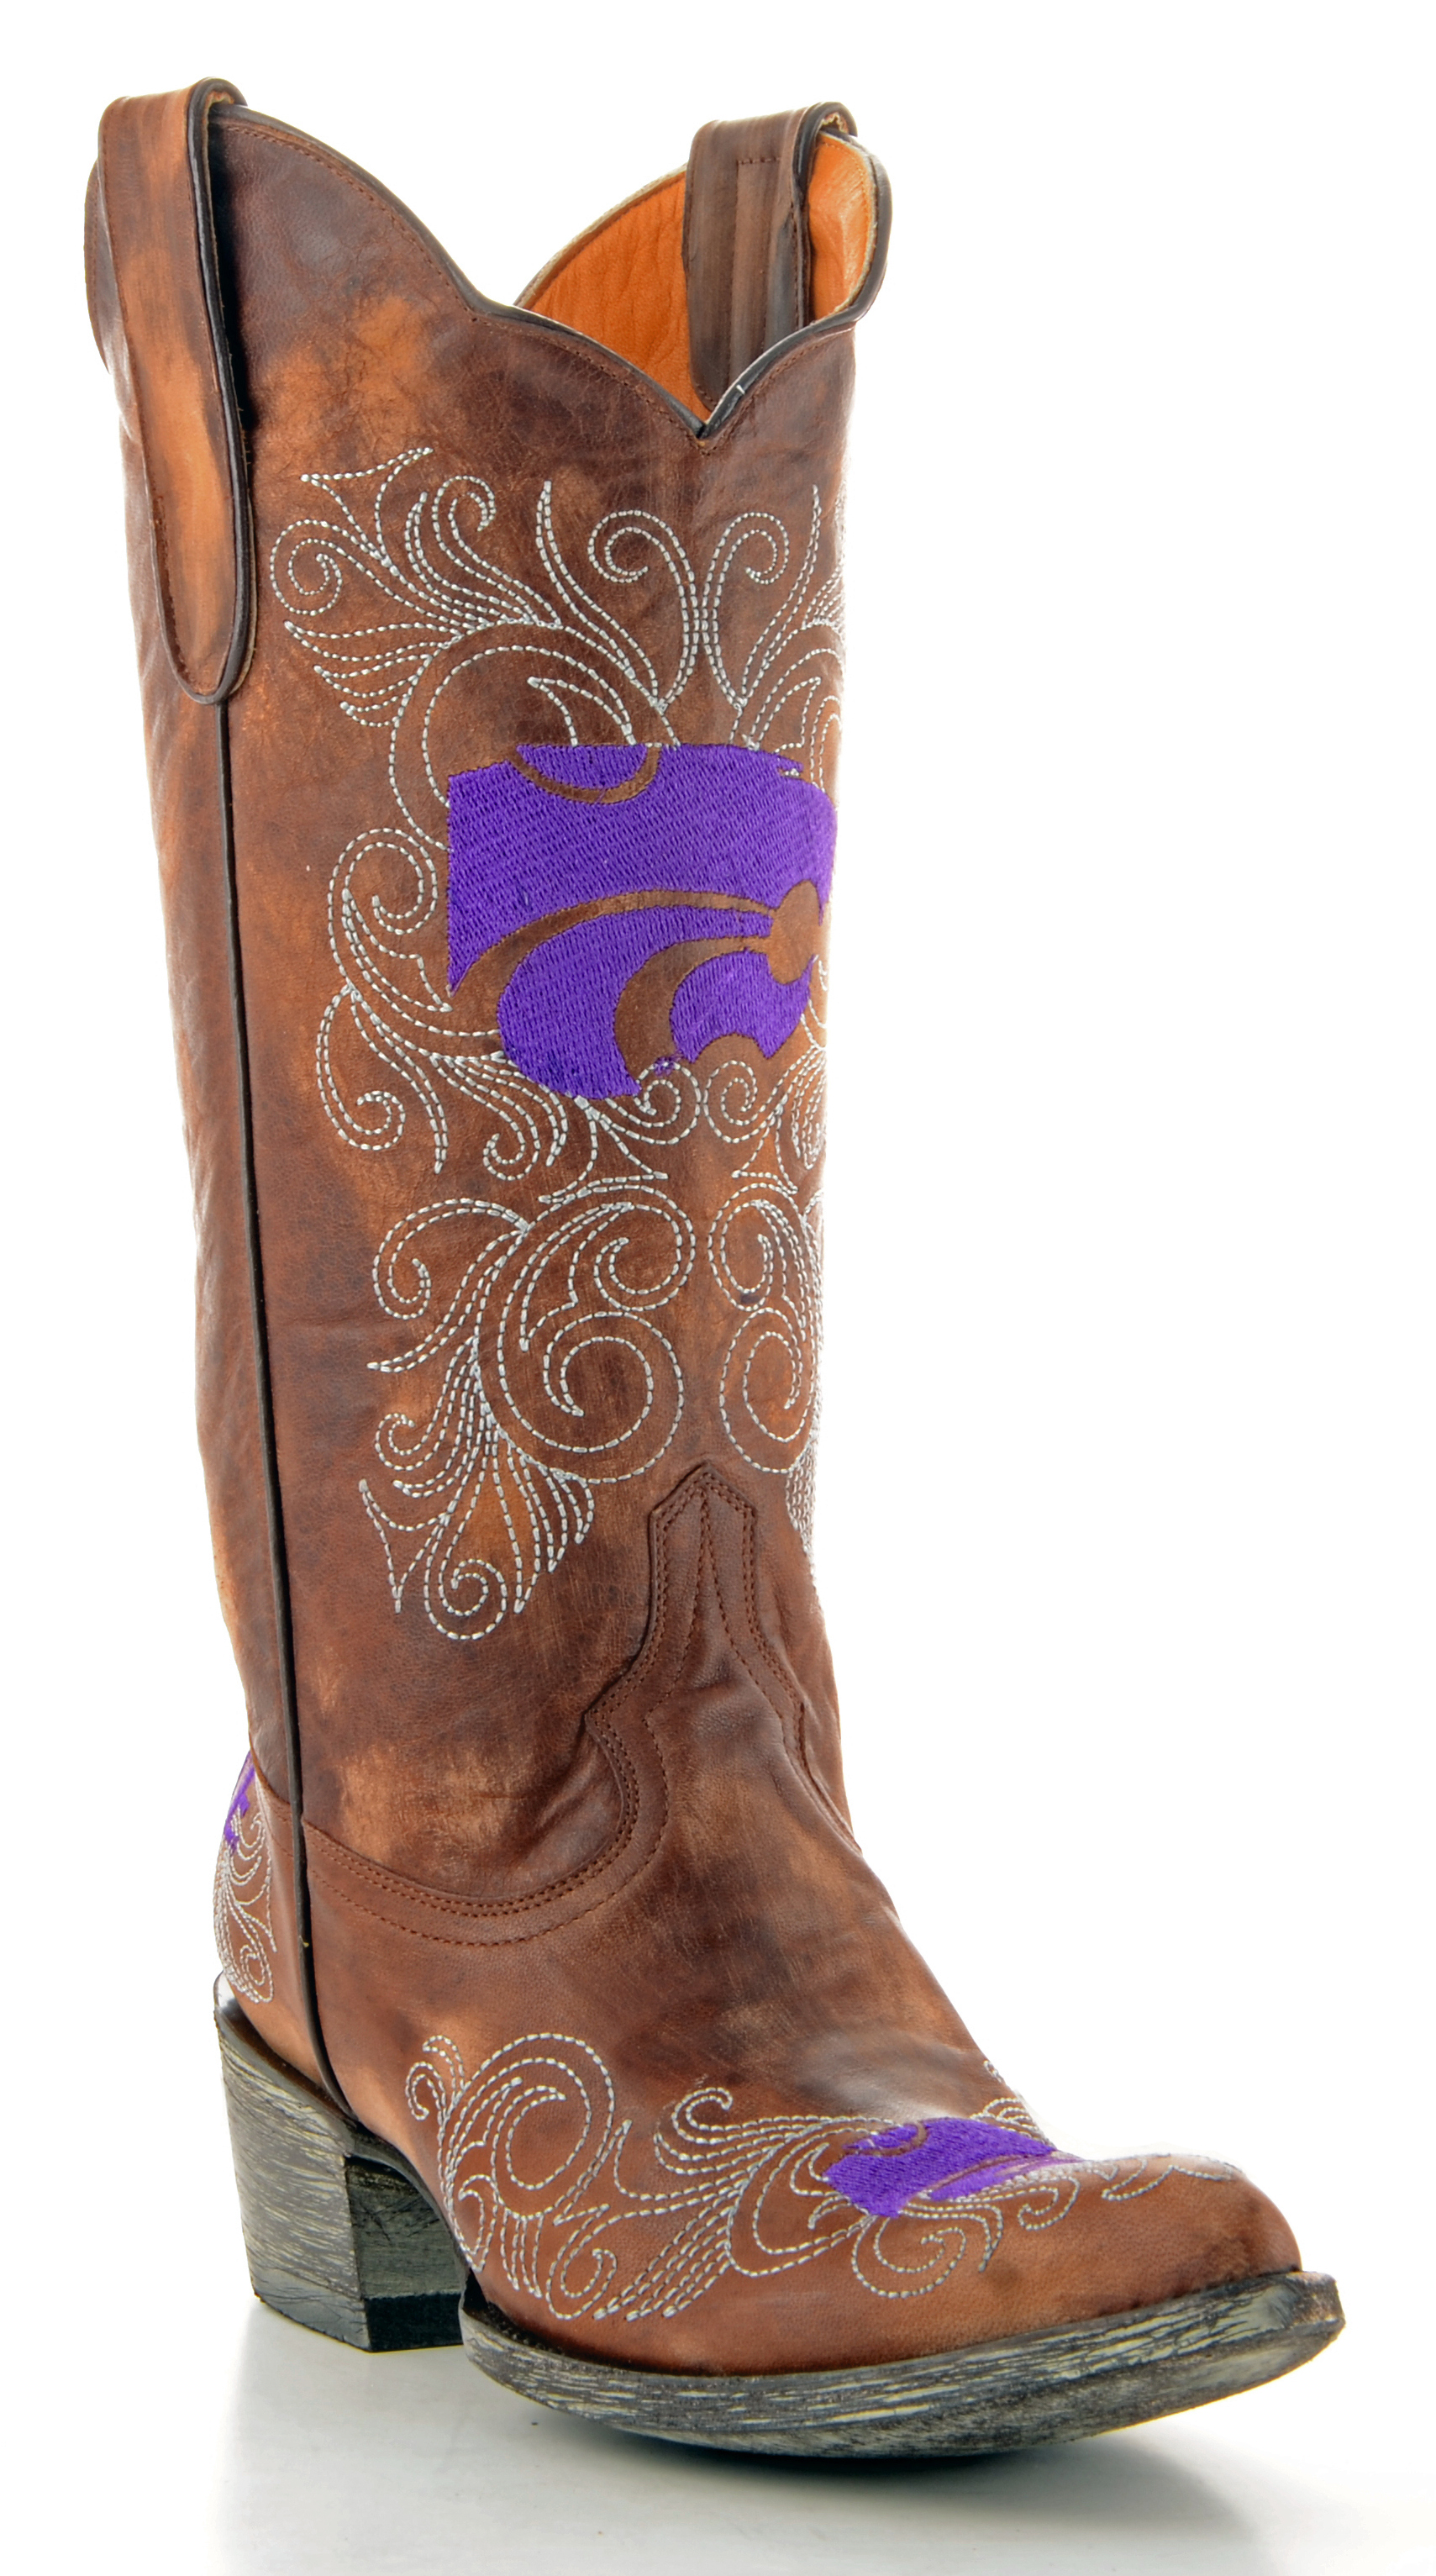 "Gameday Womens 13"" Leather Kansas State Cowboy Boots KST-L042 New by GameDay Boots"